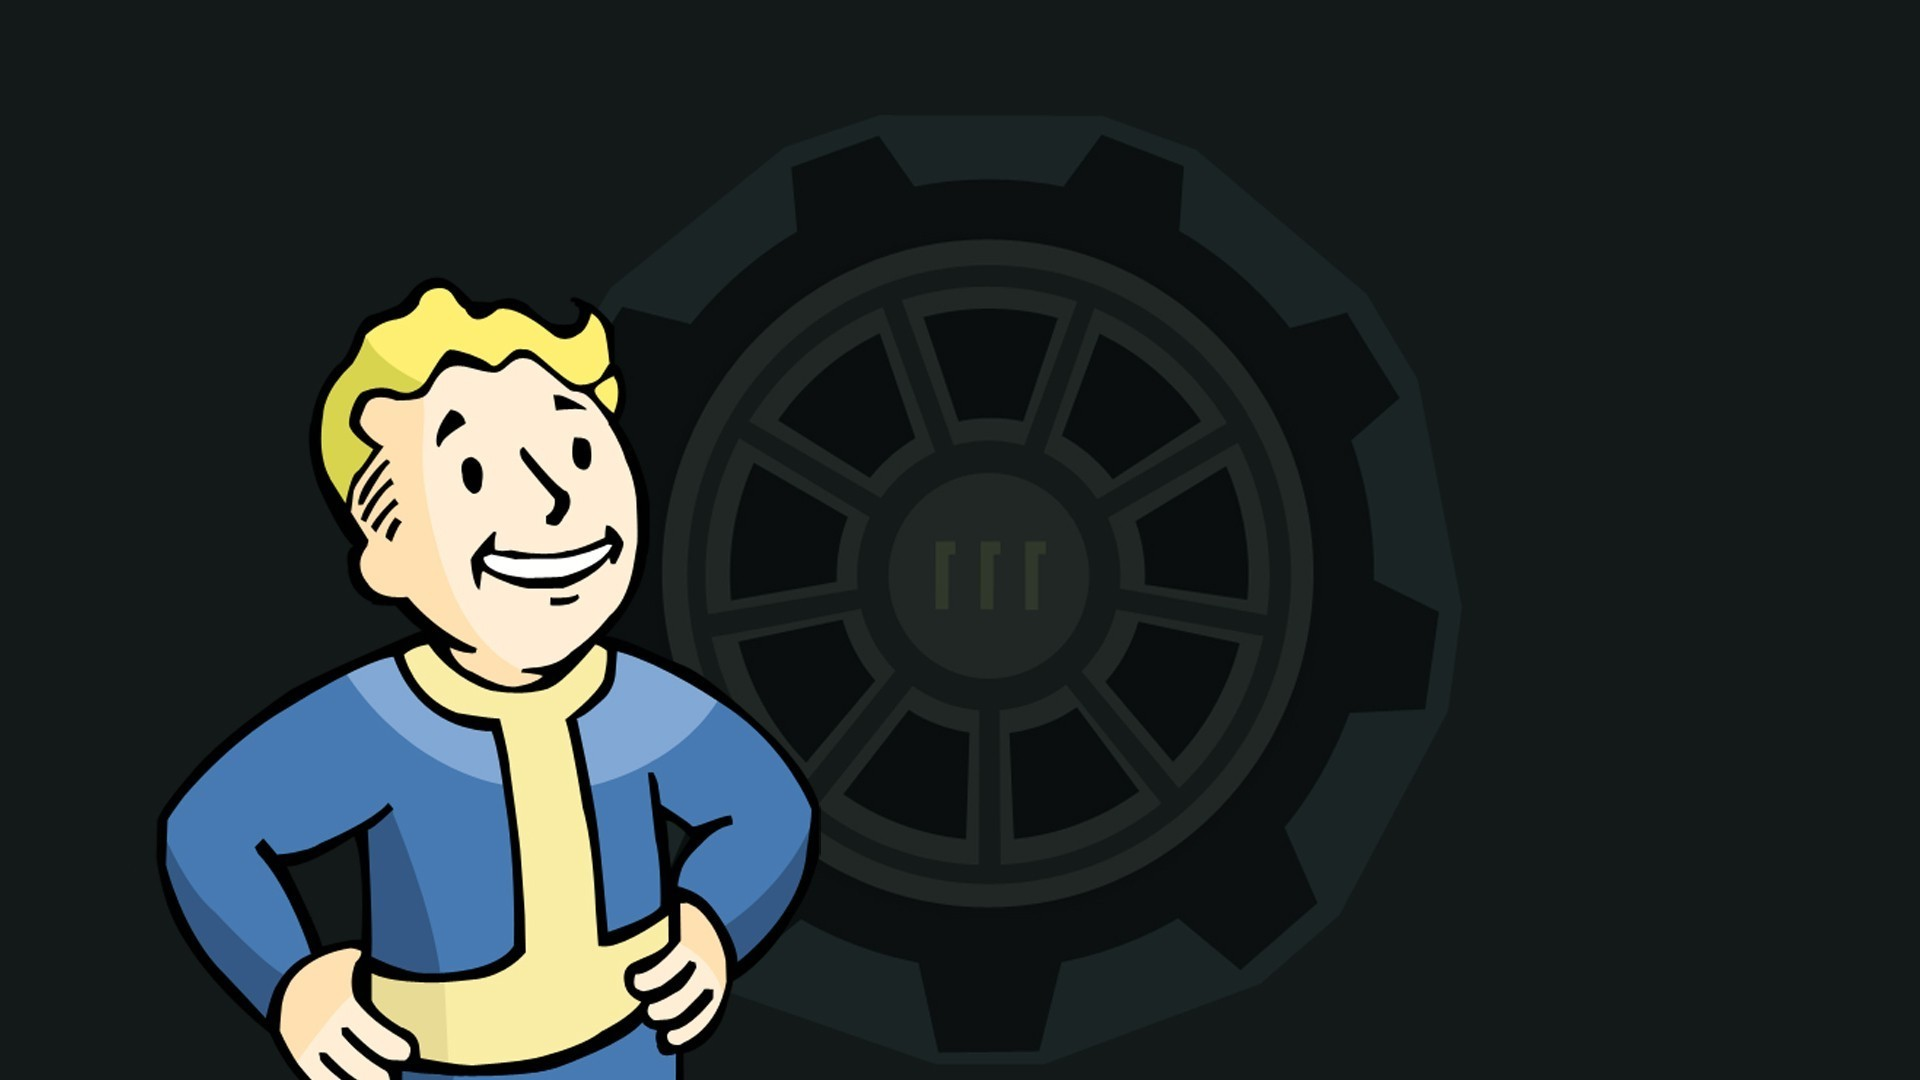 Fallout 4, Video Games, Vault 111, Vault Boy, Fallout, Bethesda Softworks,  Apocalyptic Wallpapers HD / Desktop and Mobile Backgrounds